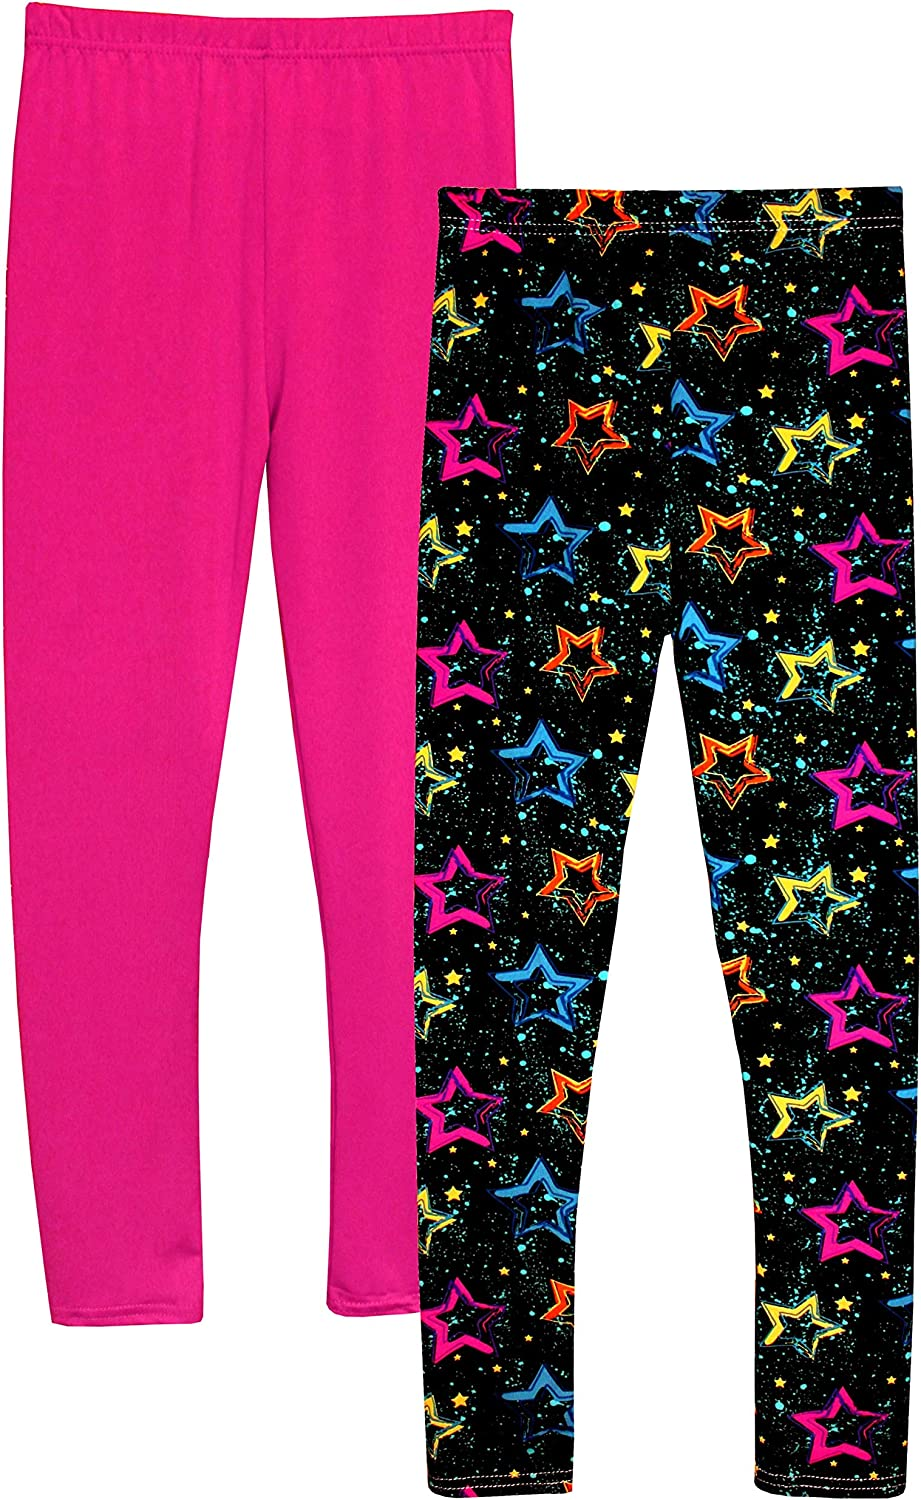 Syleia Girl Leggings High Rise with Star Pattern